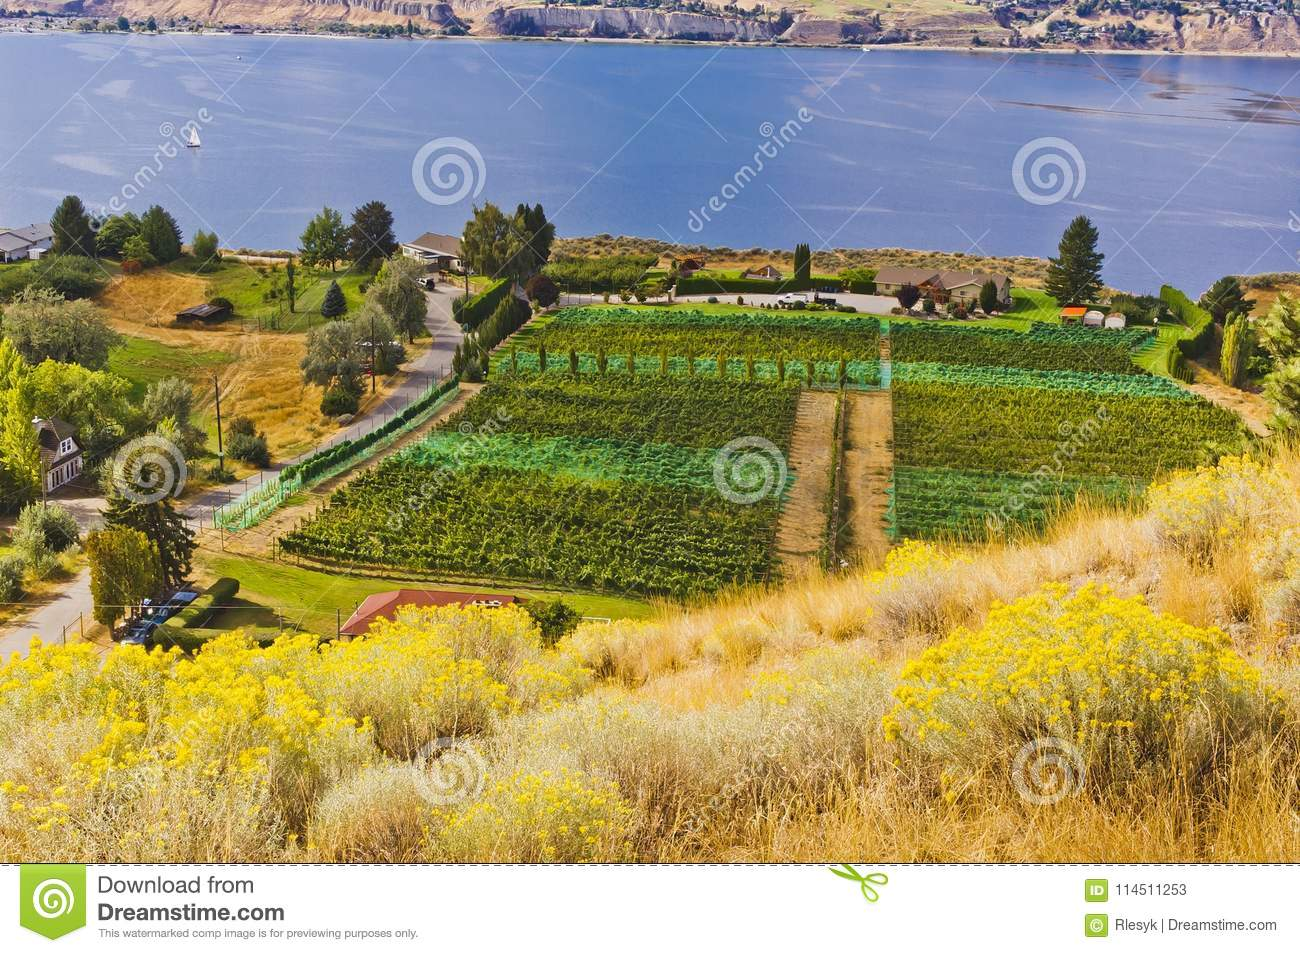 Vineyards With Protective Netting Stock Image - Image of